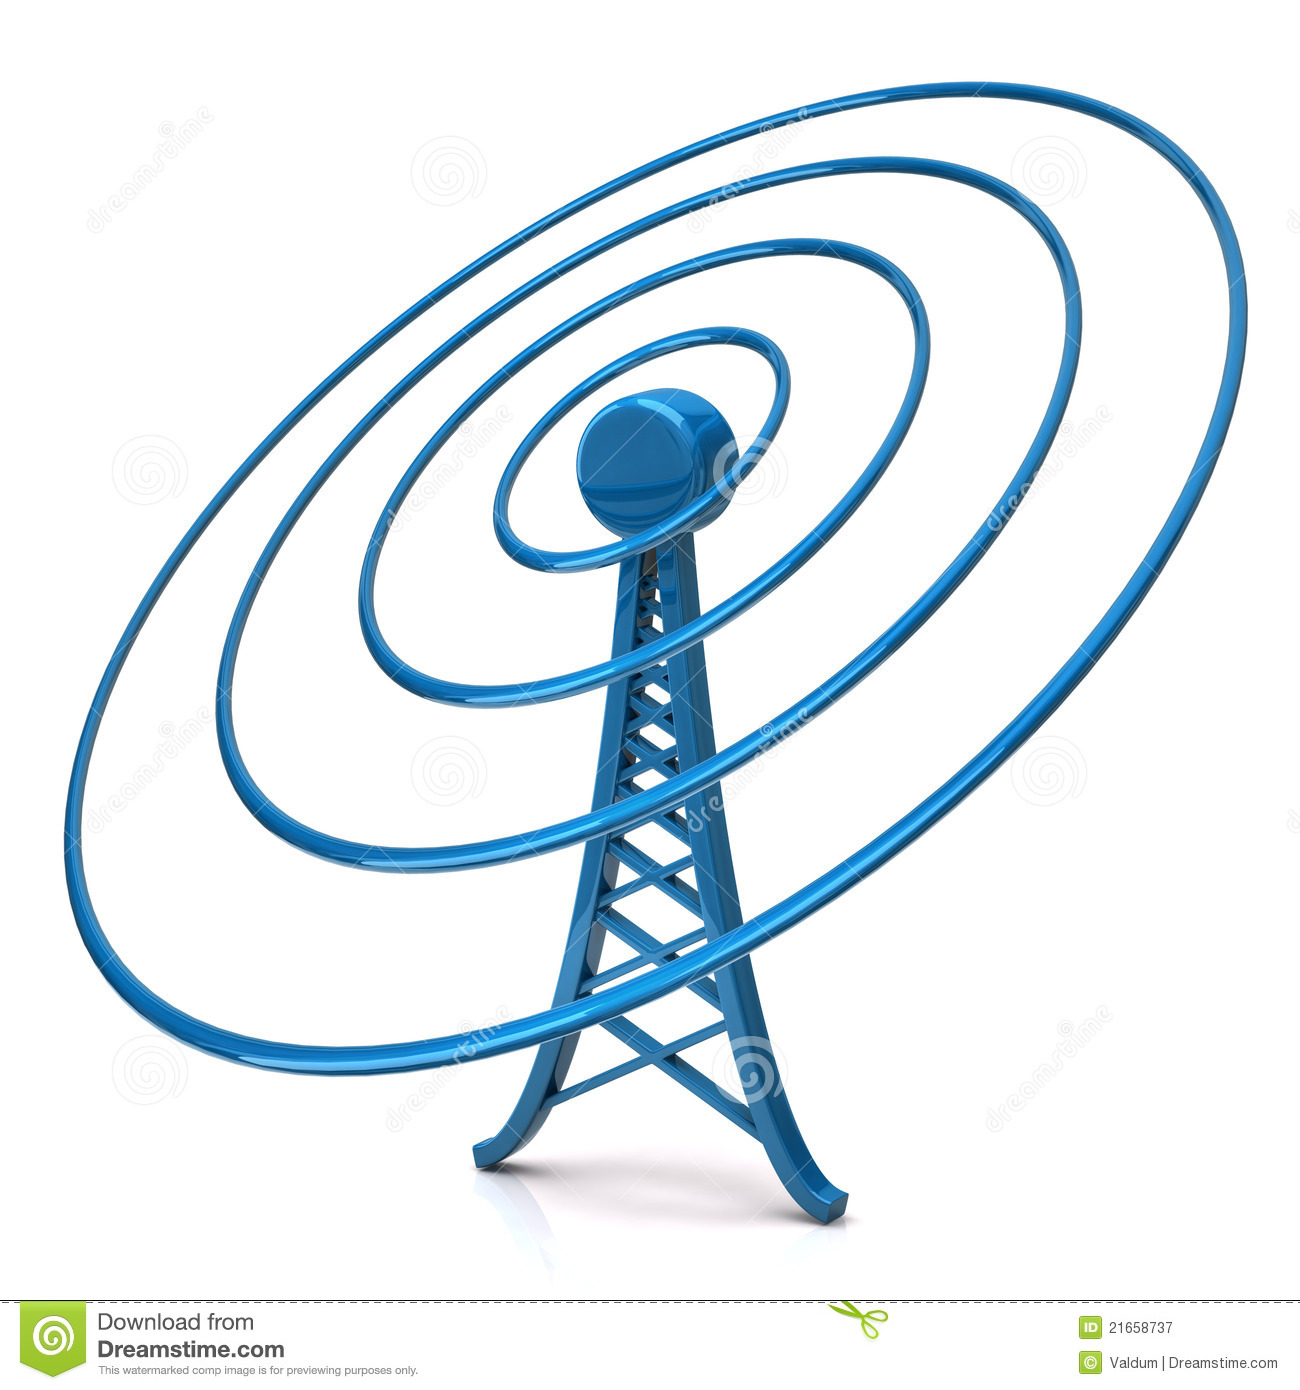 Wireless Tower Royalty Free Stock Photography - Image: 21658737